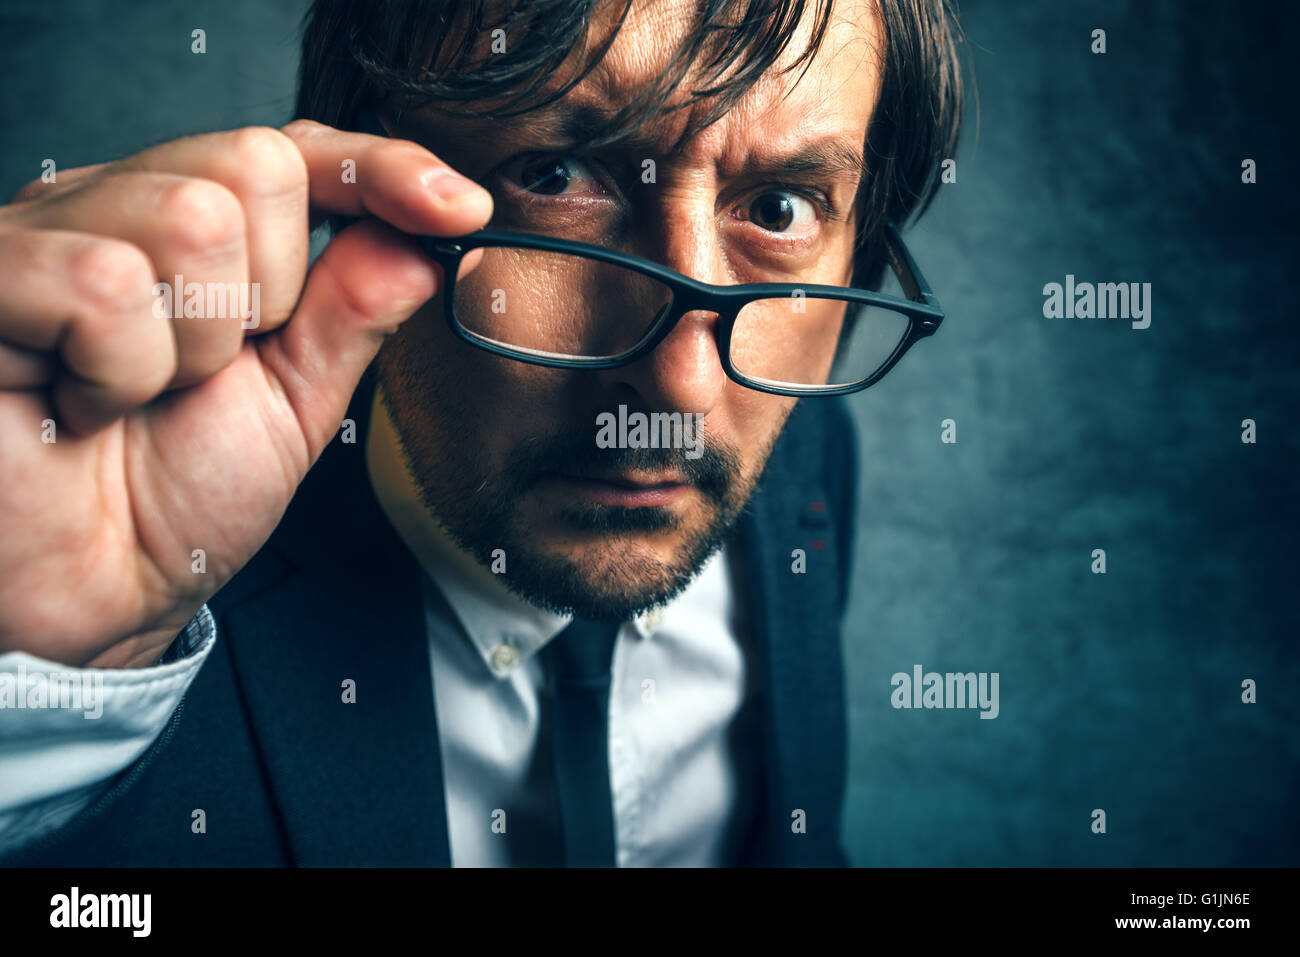 Angry tax inspector looking serious and determined, adult businessperson with glasses - Stock Image